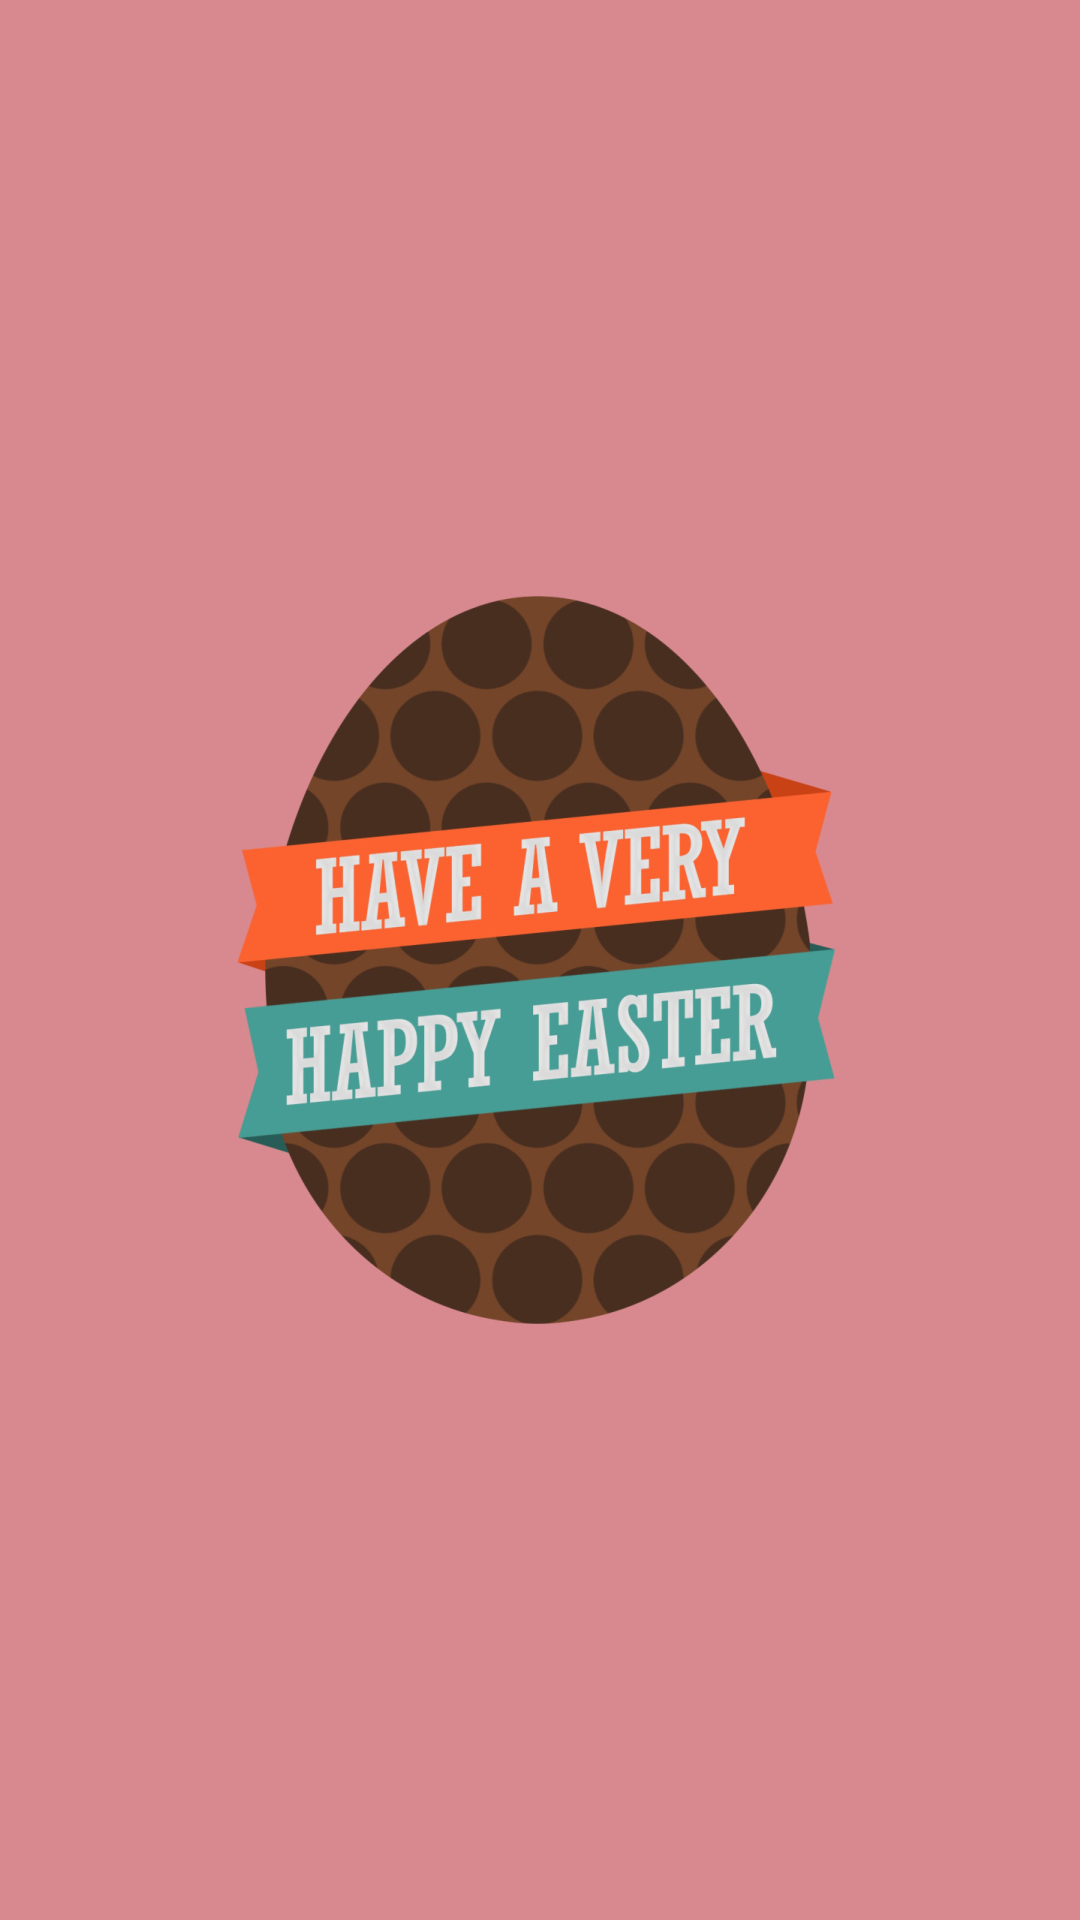 Very Happy Easter Egg wallpaper 1080x1920